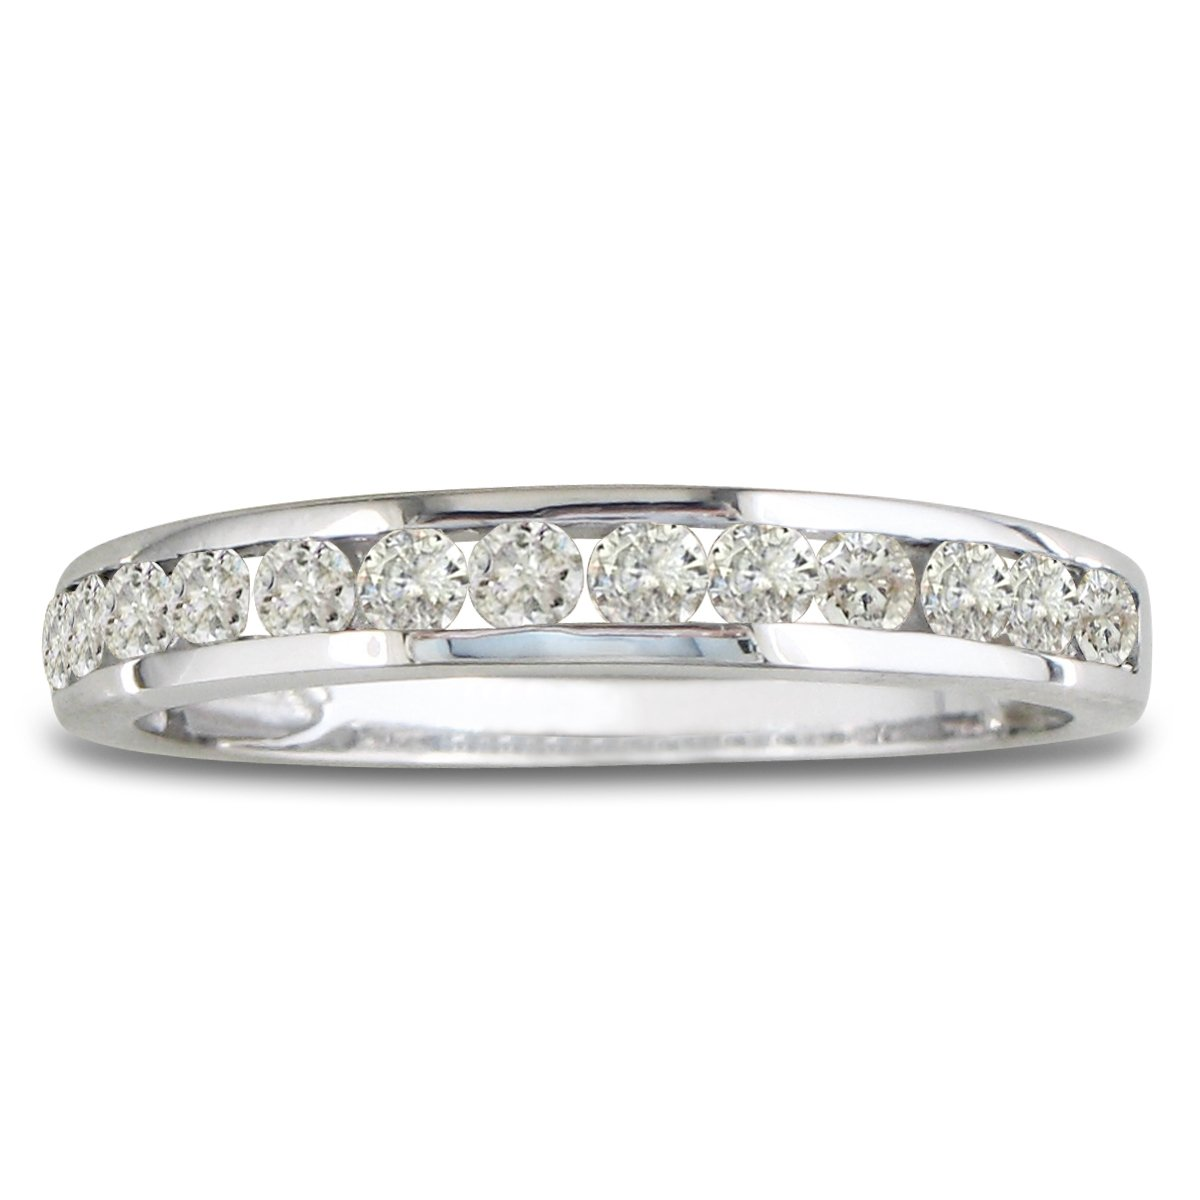 10K White Gold Round Diamond Anniversary Wedding Band Ring (1/4cttw) With Fre... SuperJeweler H069826 10W JK I2 SZ8